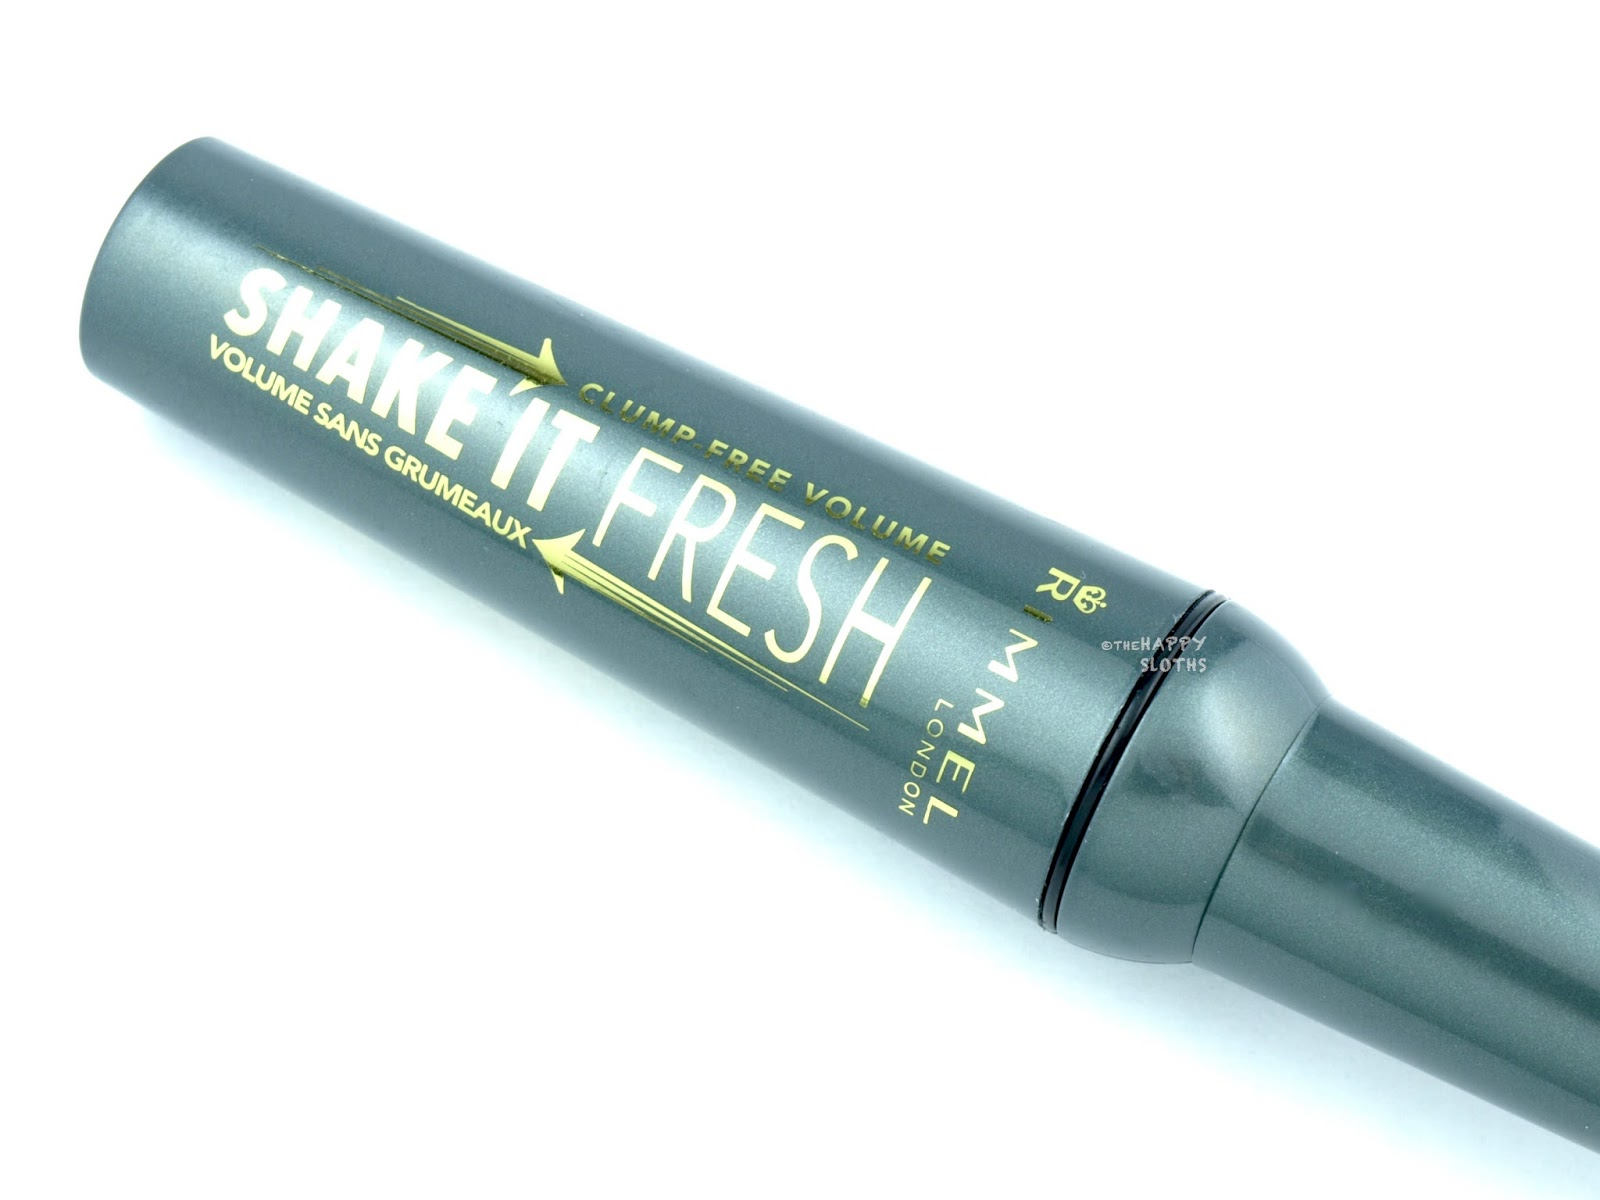 Rimmel Shake It Fresh Mascara: Review and Swatches